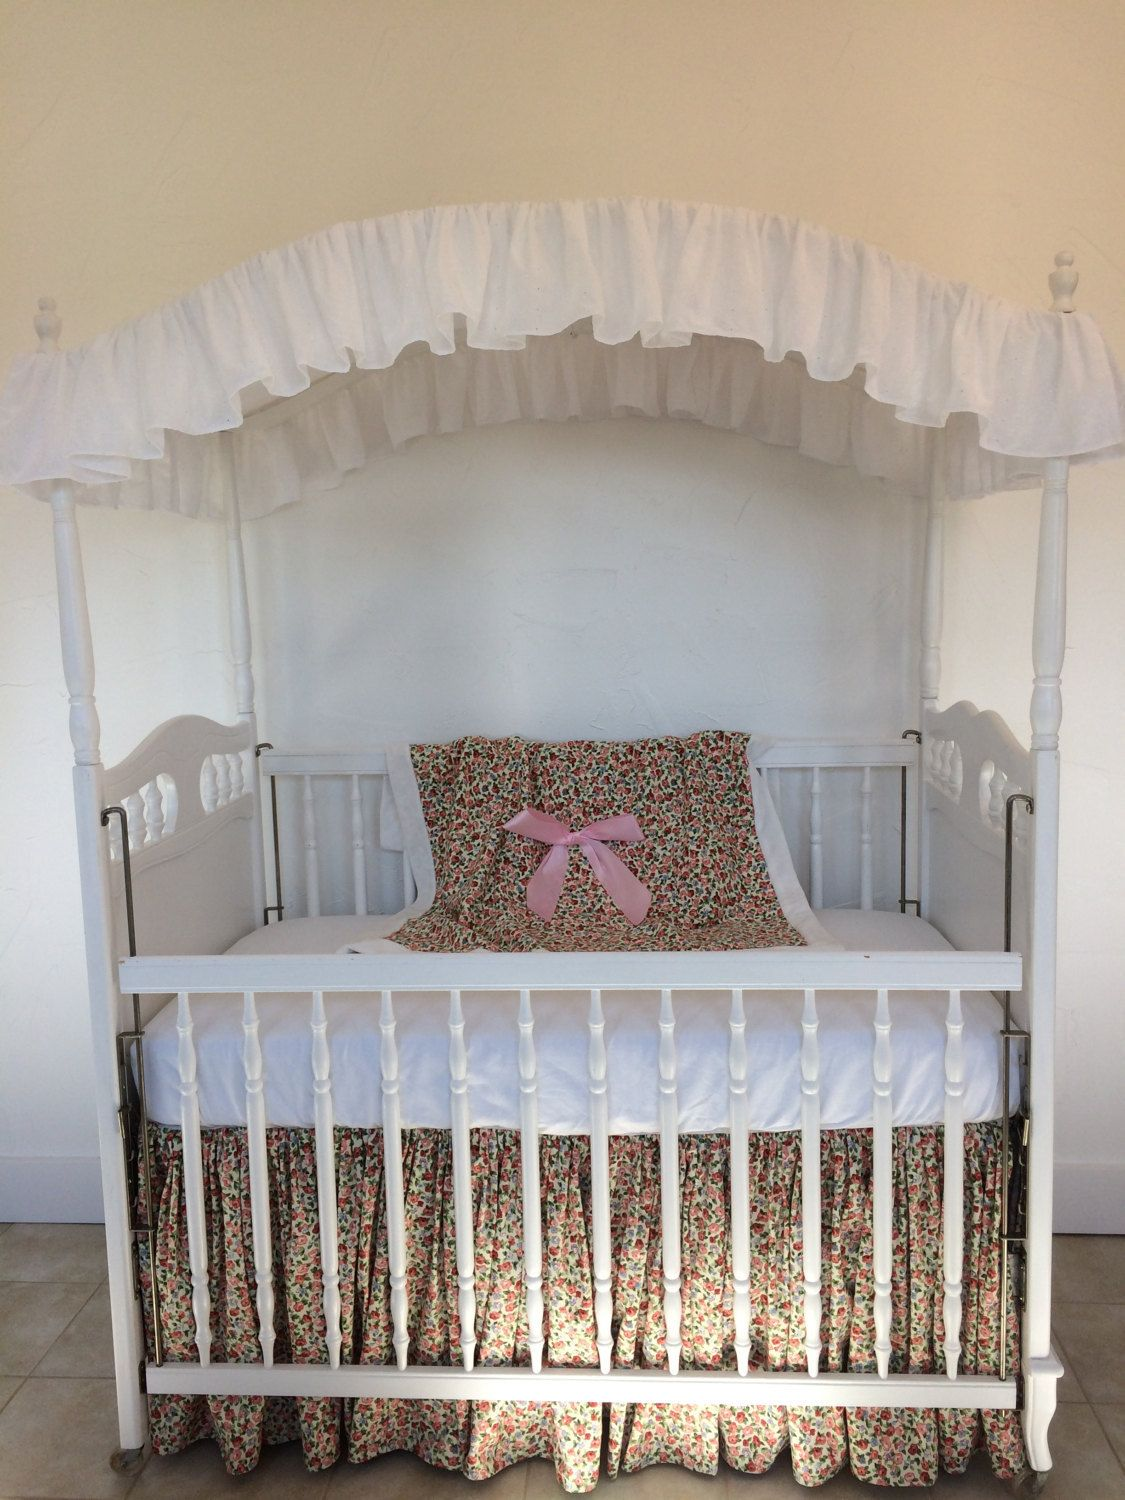 Baby cribs with canopy - Embroidered White Eyelet Baby Crib Canopy Cover